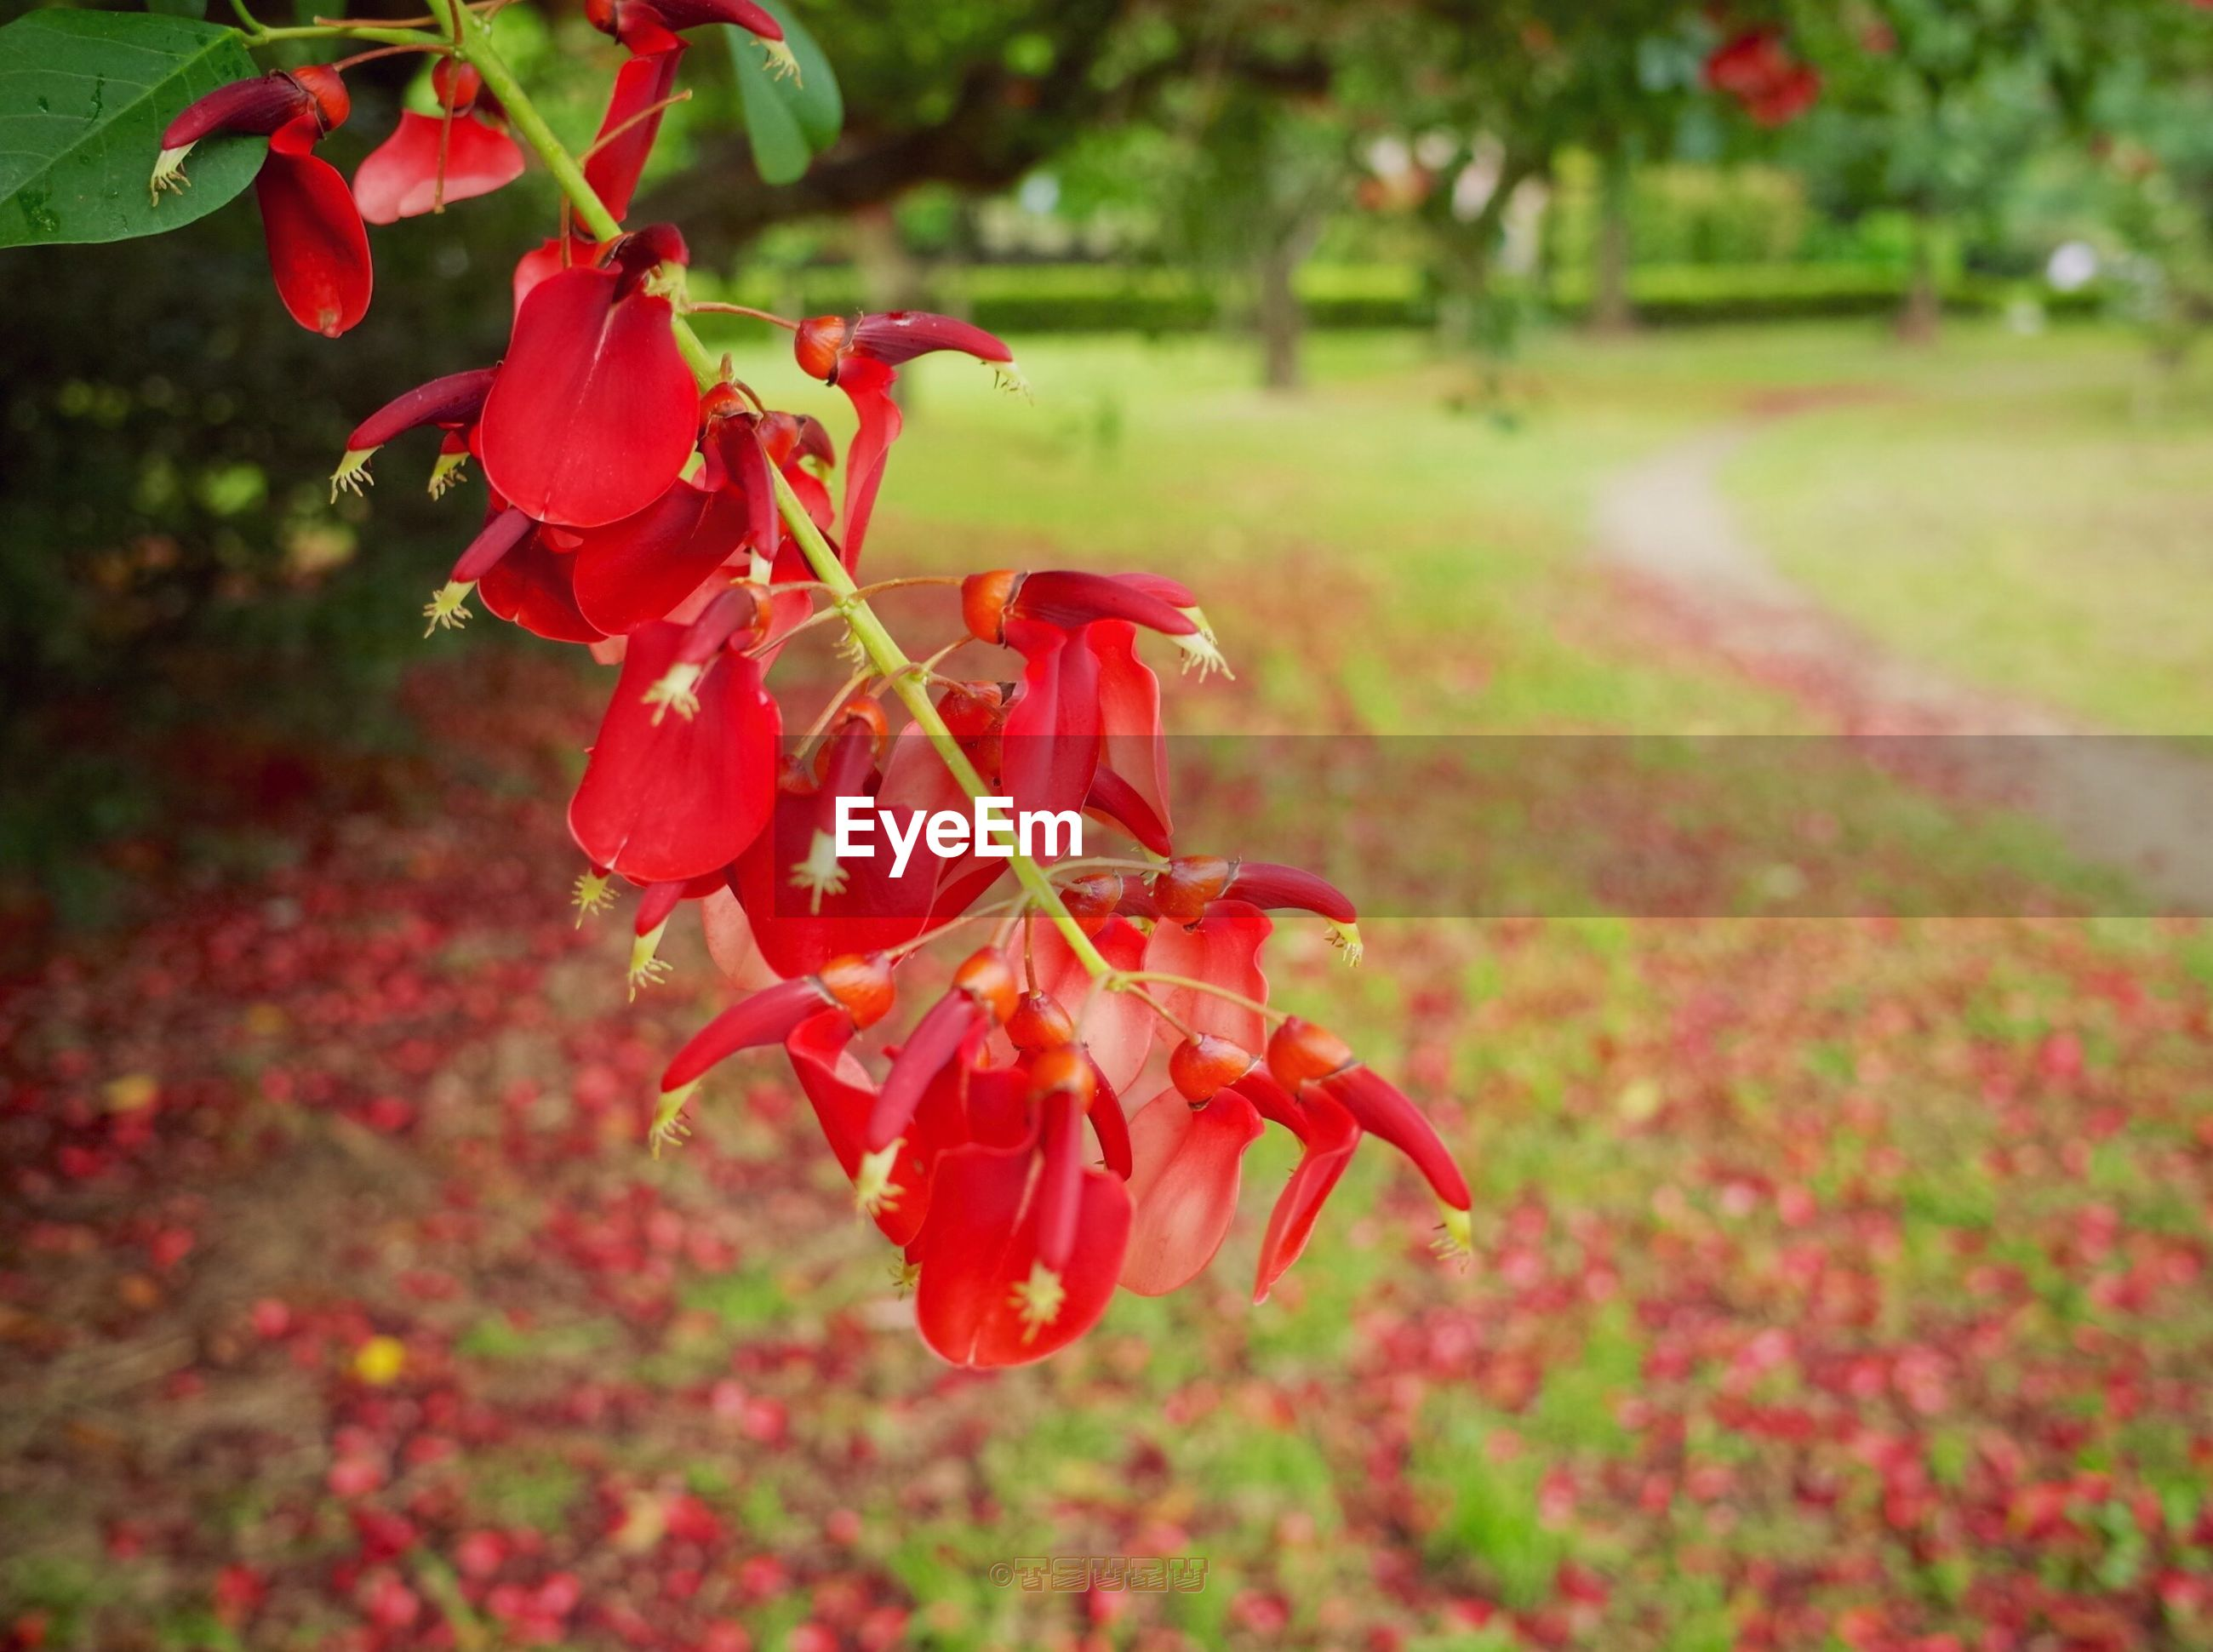 flower, freshness, red, growth, fragility, beauty in nature, petal, focus on foreground, nature, plant, blooming, close-up, leaf, flower head, blossom, in bloom, selective focus, park - man made space, day, outdoors